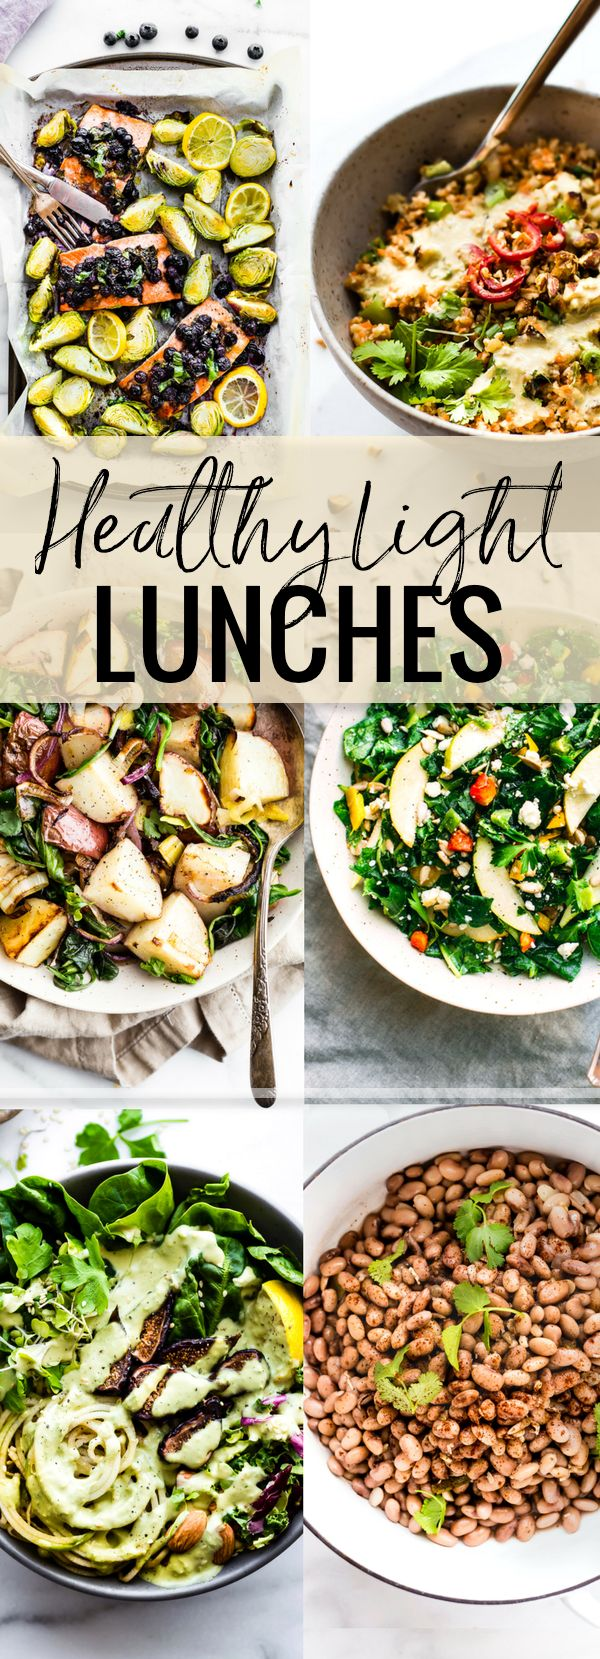 Healthy light lunch recipes with seasonal vegetables, fresh fish, and healthy greens means these recipes are super quick and easy to make, too. all gluten-free with a few paleo/vegetarian options too! www.cottercrunch.com